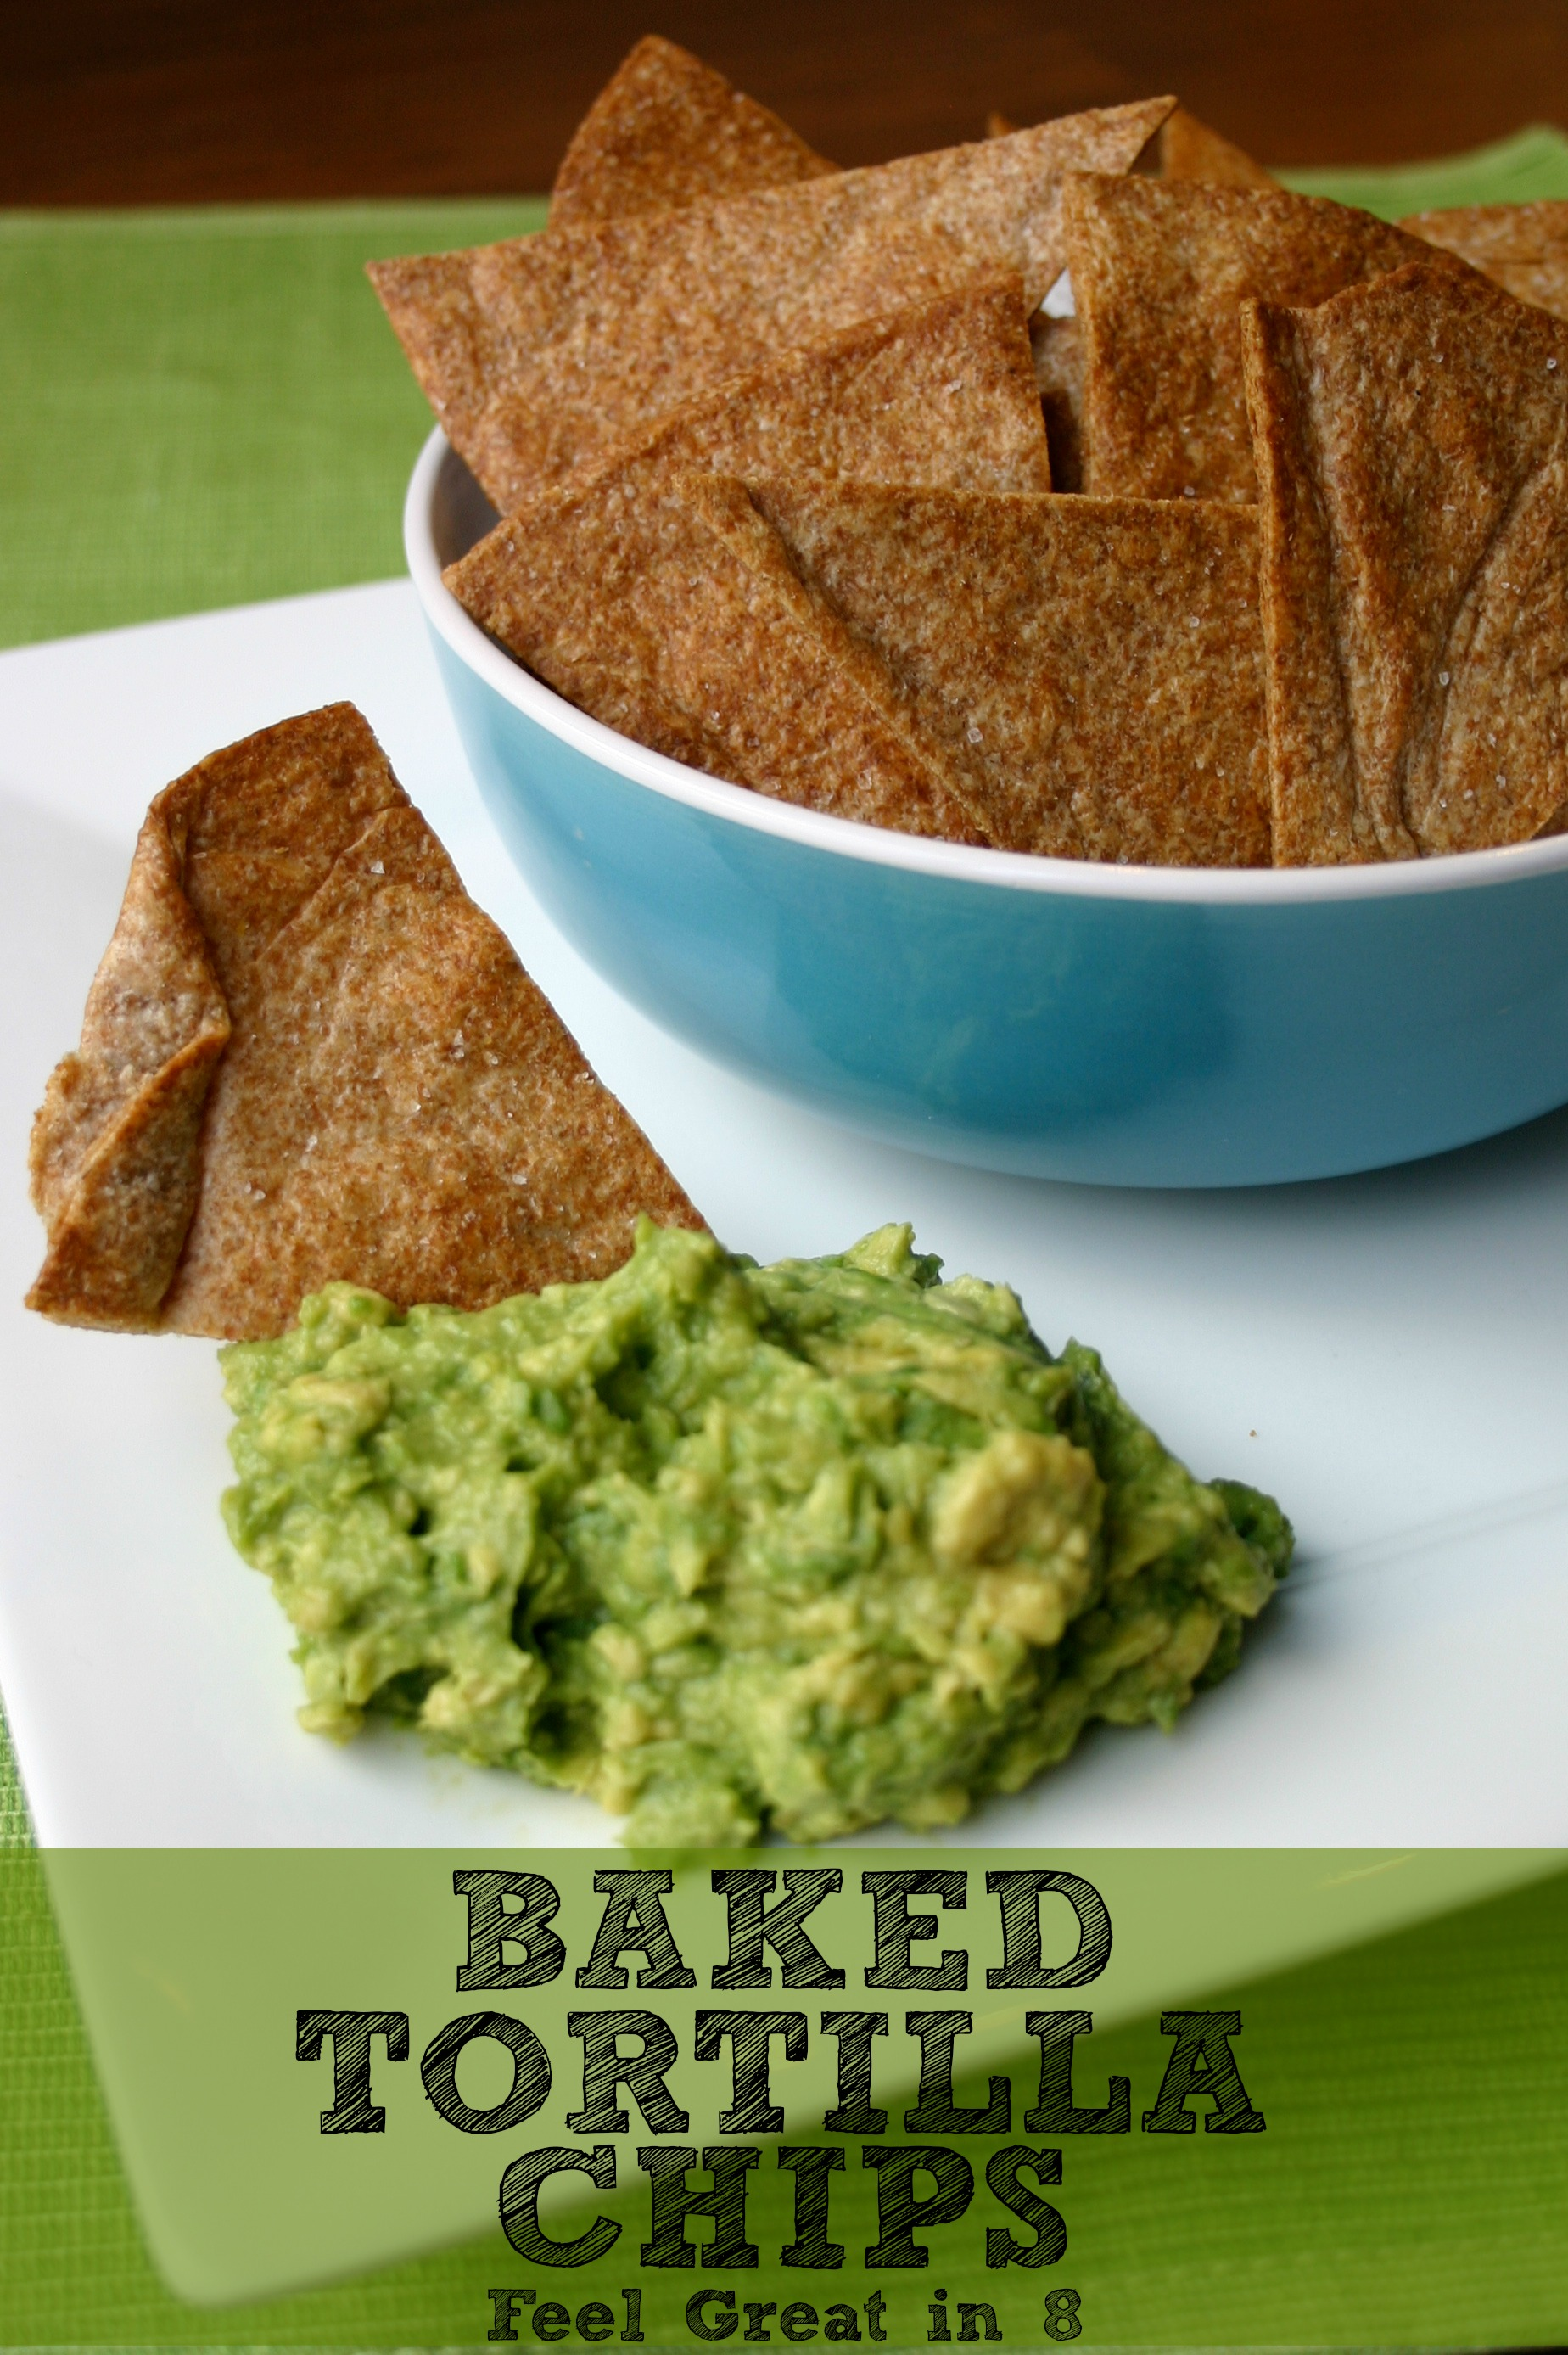 Cut back on calories and unhealthy fats with these homemade baked tortilla chips! They are the perfect healthy solution to salty, crunchy cravings! #healthy #snacks #homemade